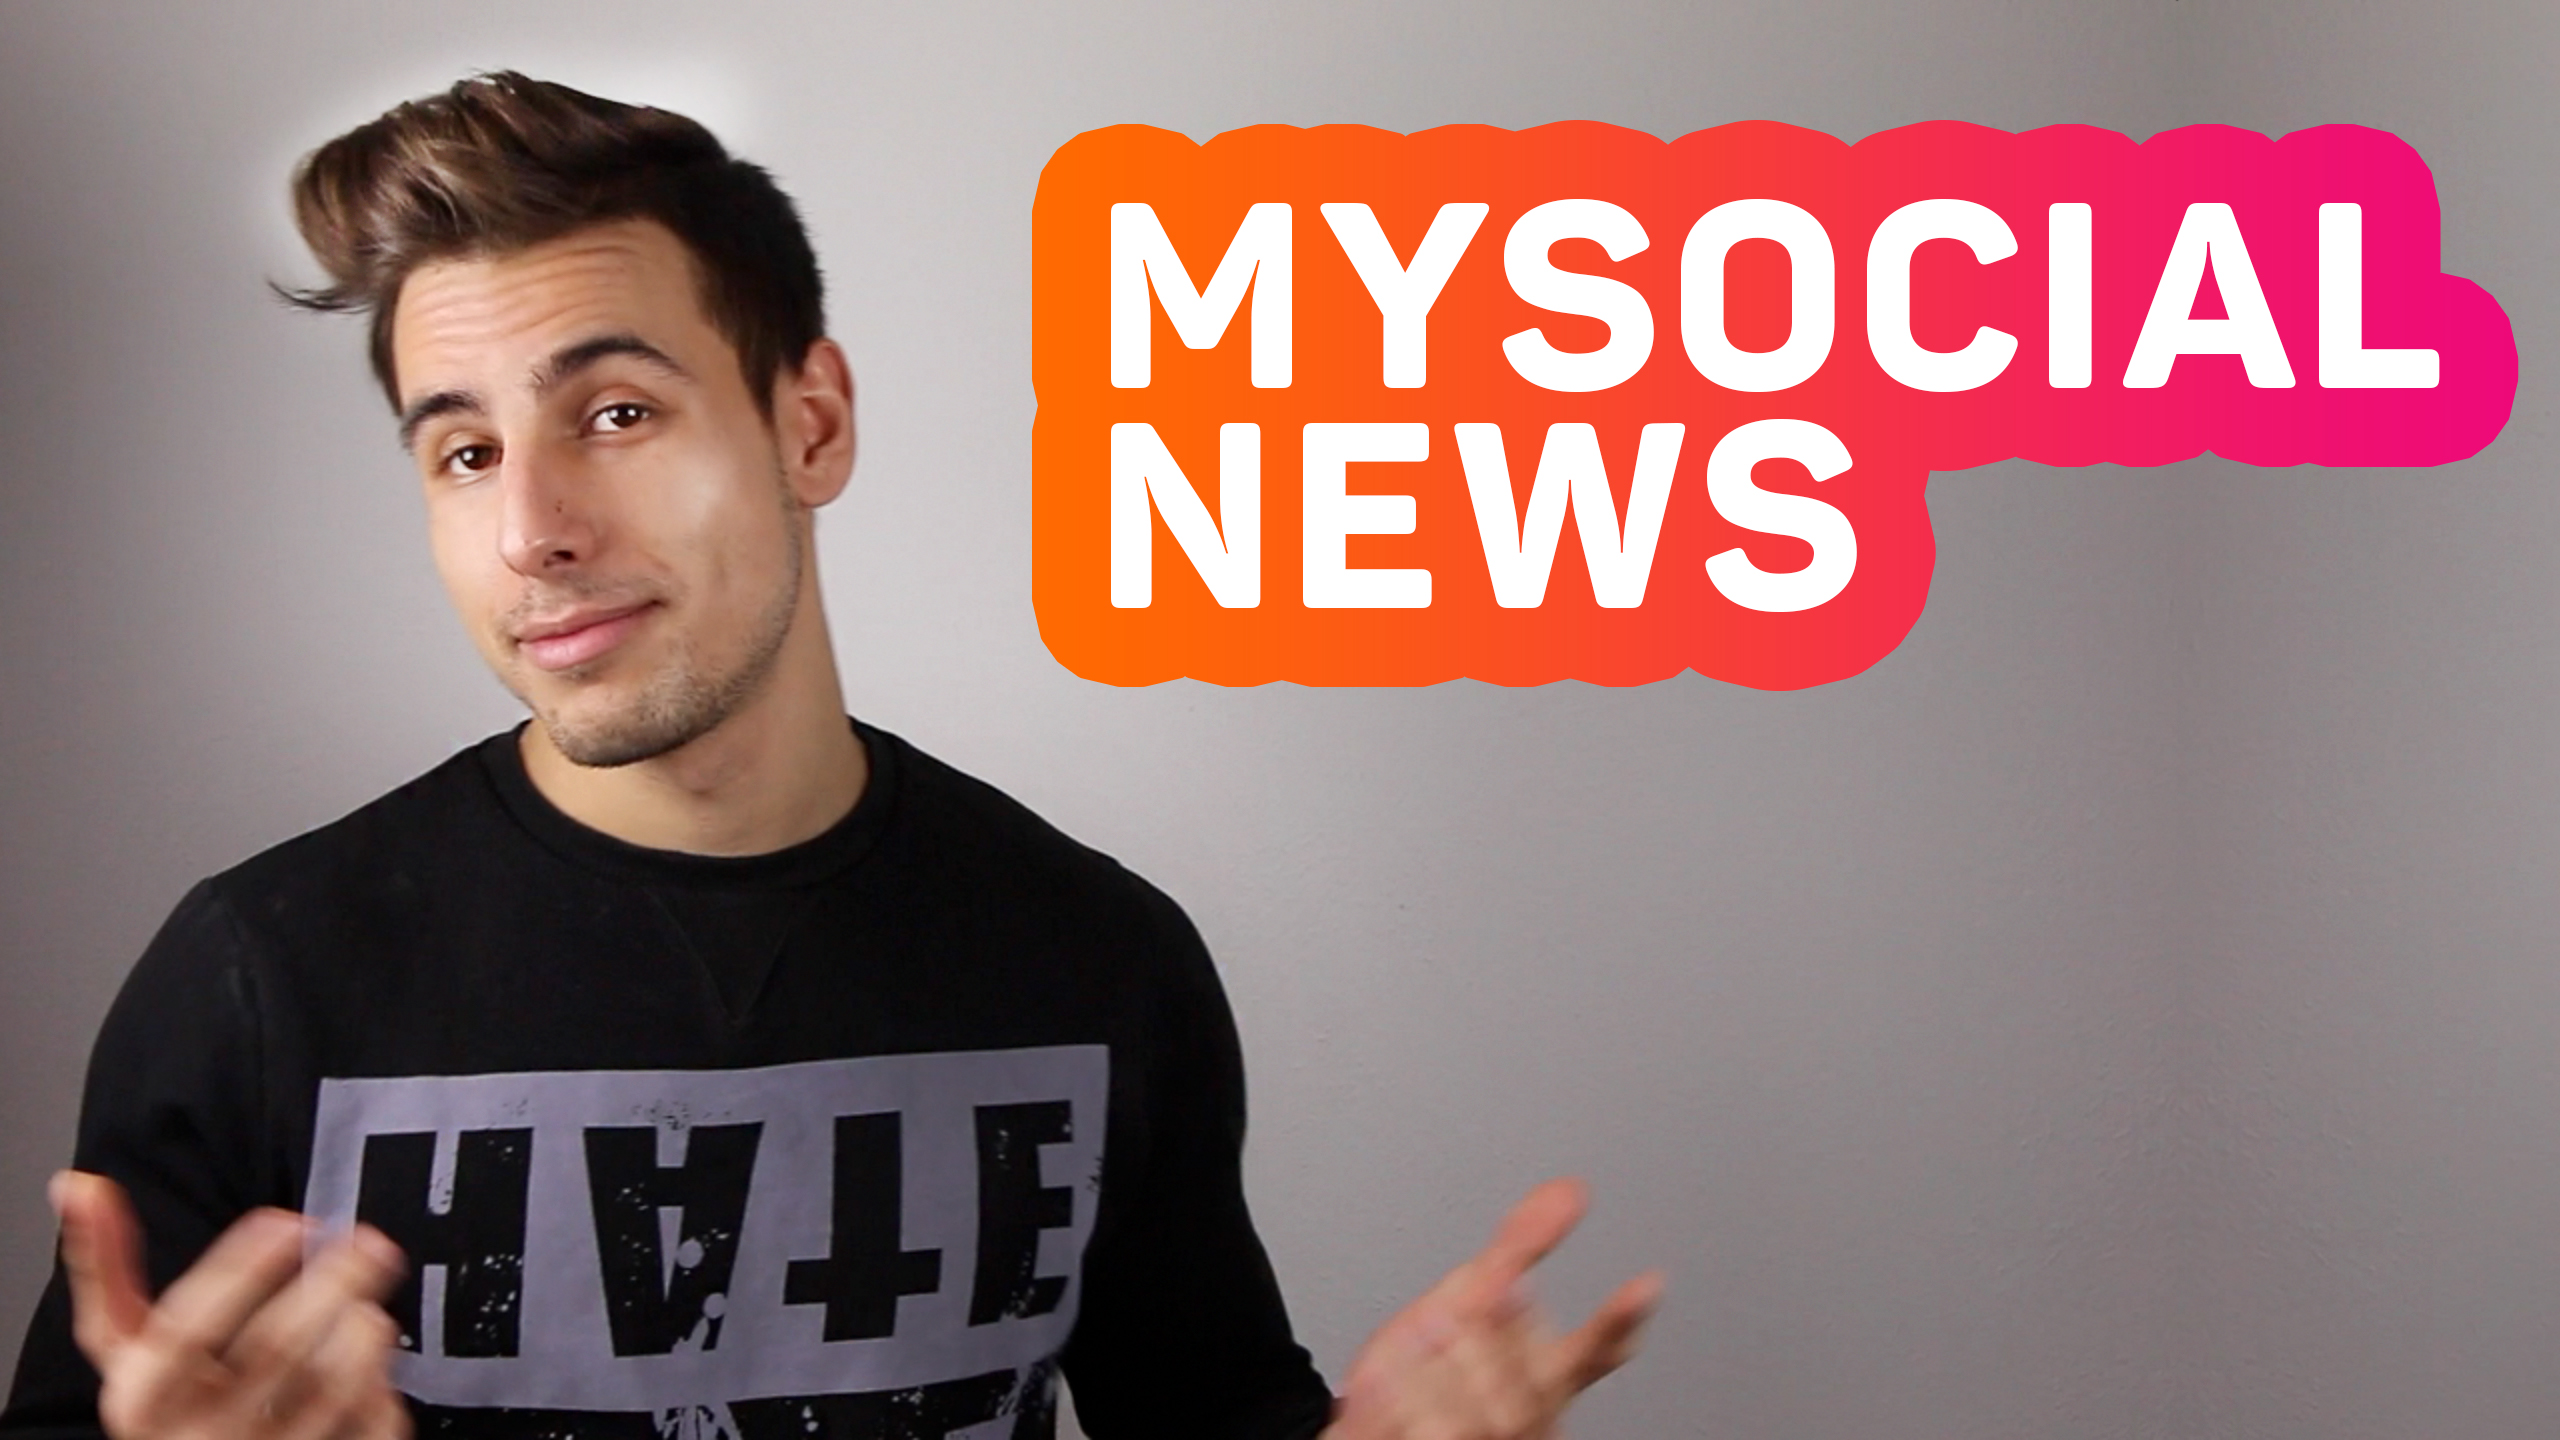 Facebook monetizes Creator platform, Shopping on Instagram expands: Mysocial News